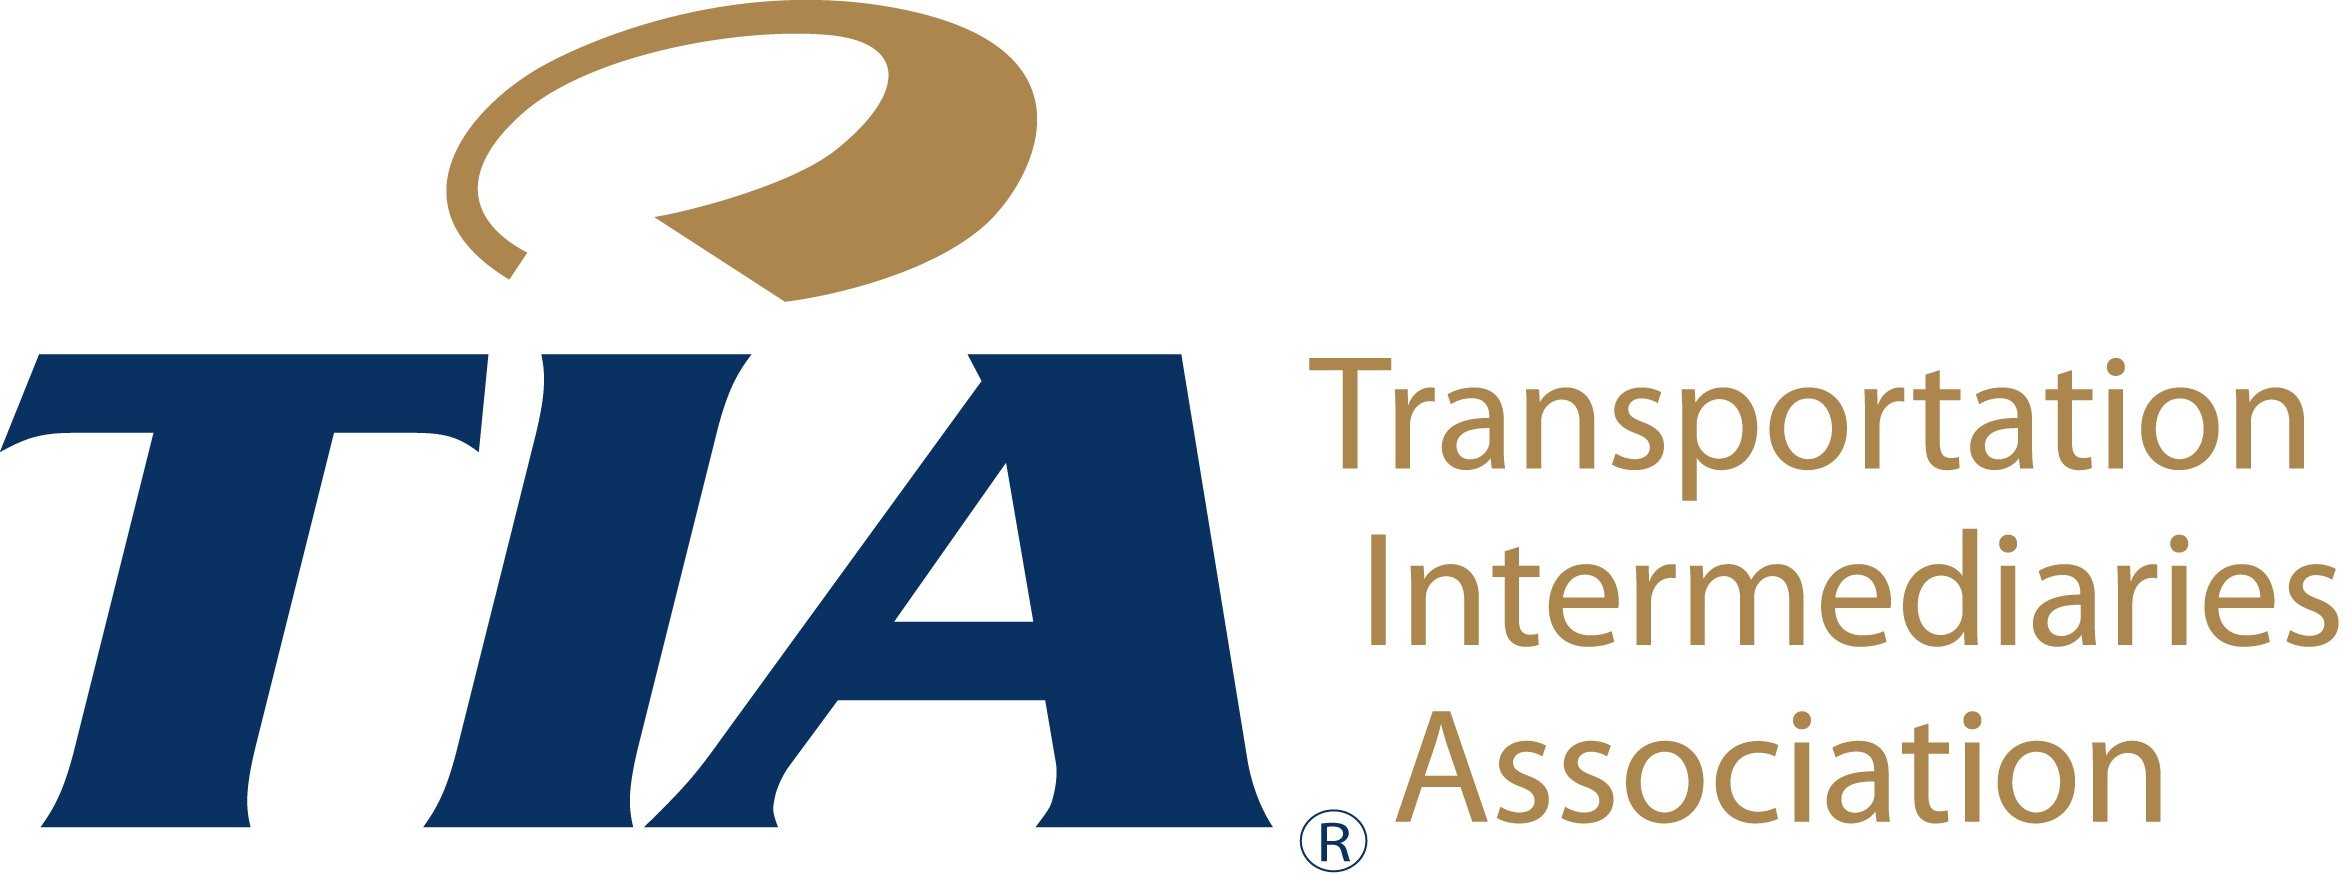 Transportation Intermediaries Asso.